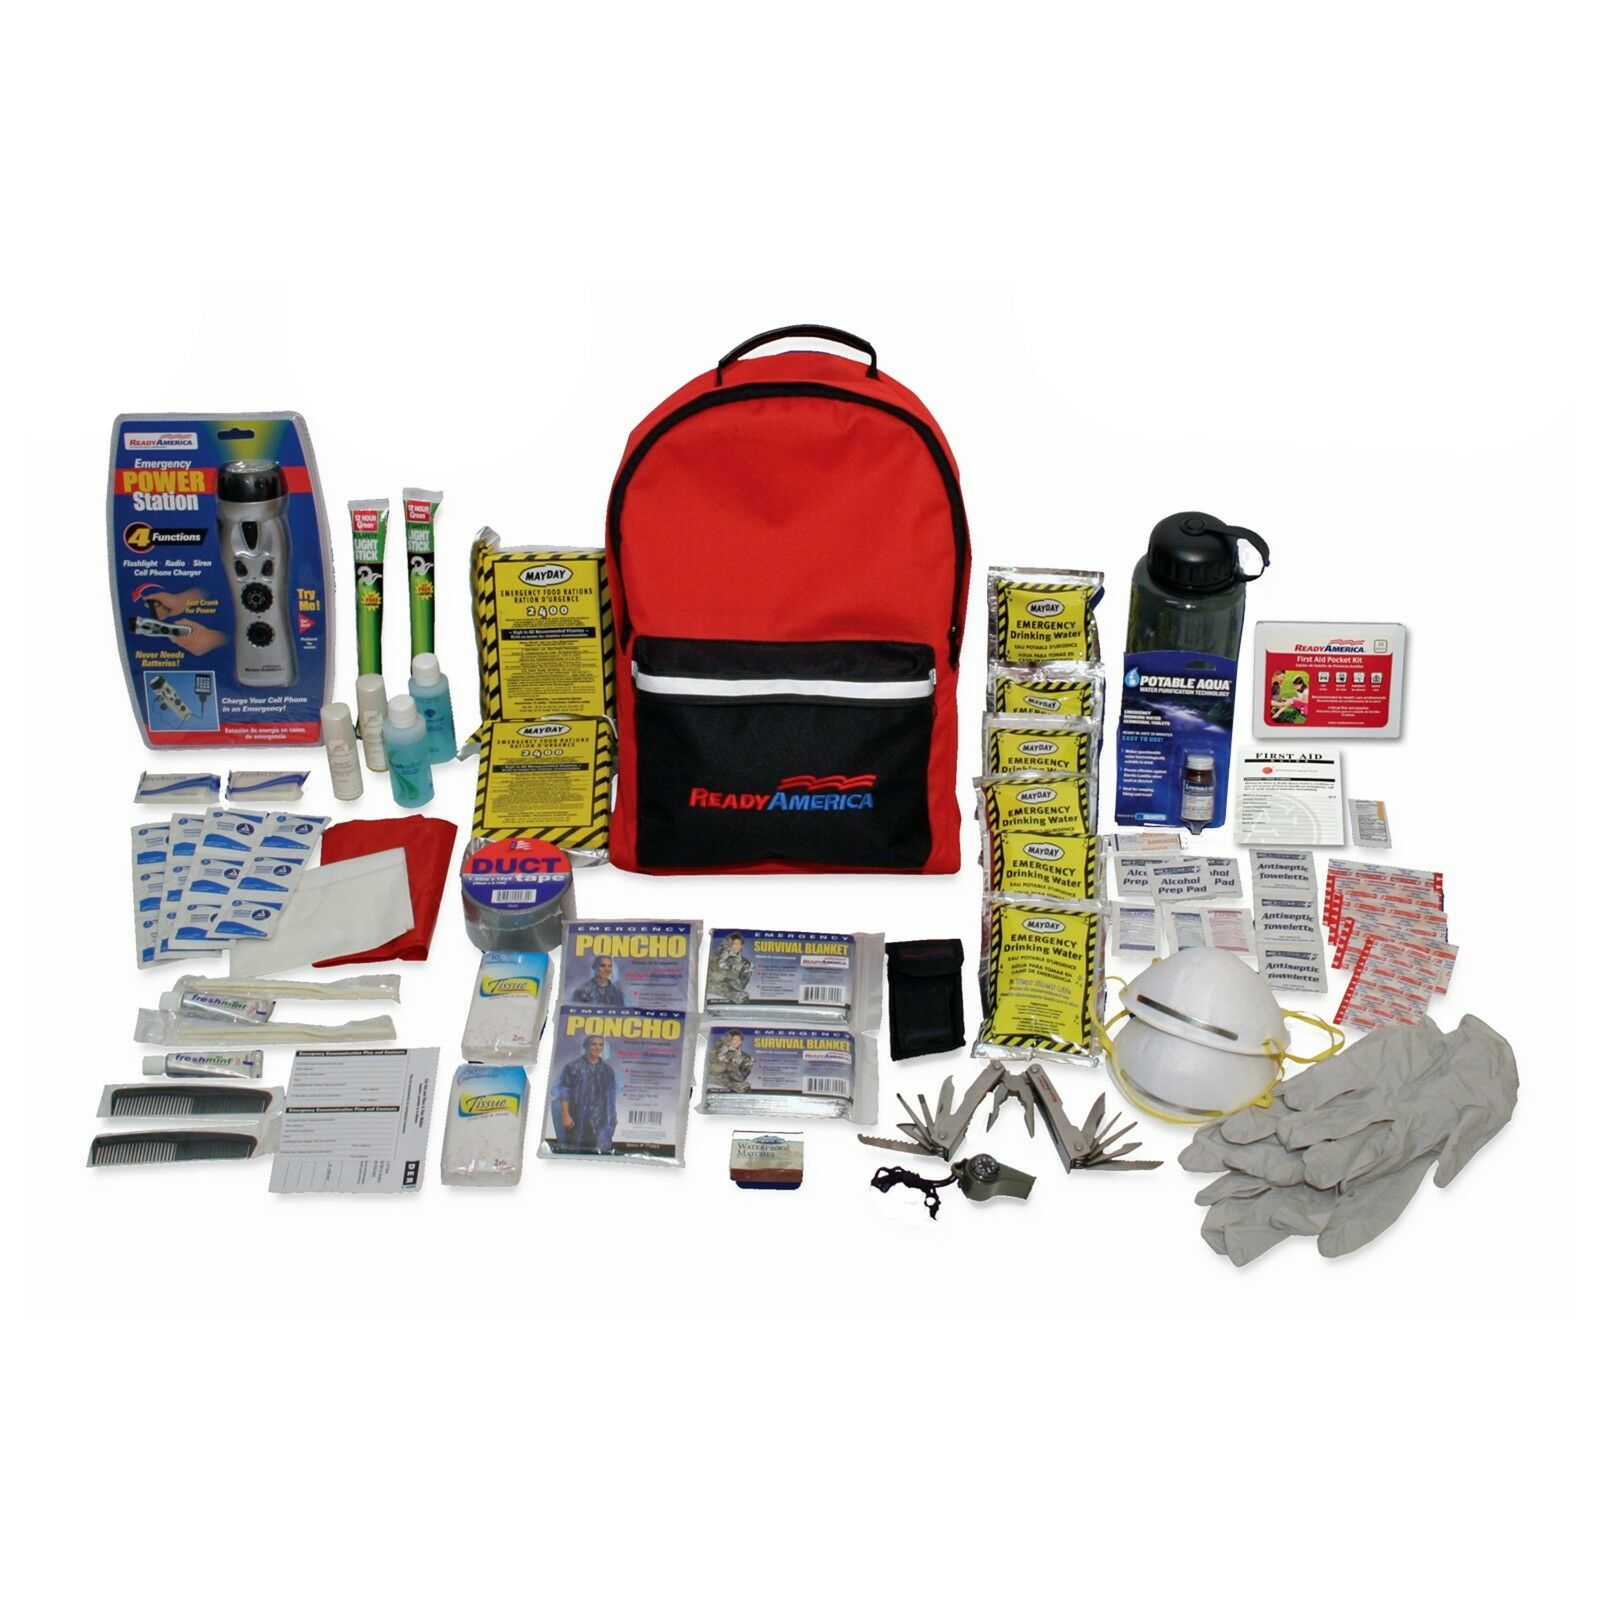 2 Person Deluxe Emergency Kit (3 Day Backpack) - Ready America